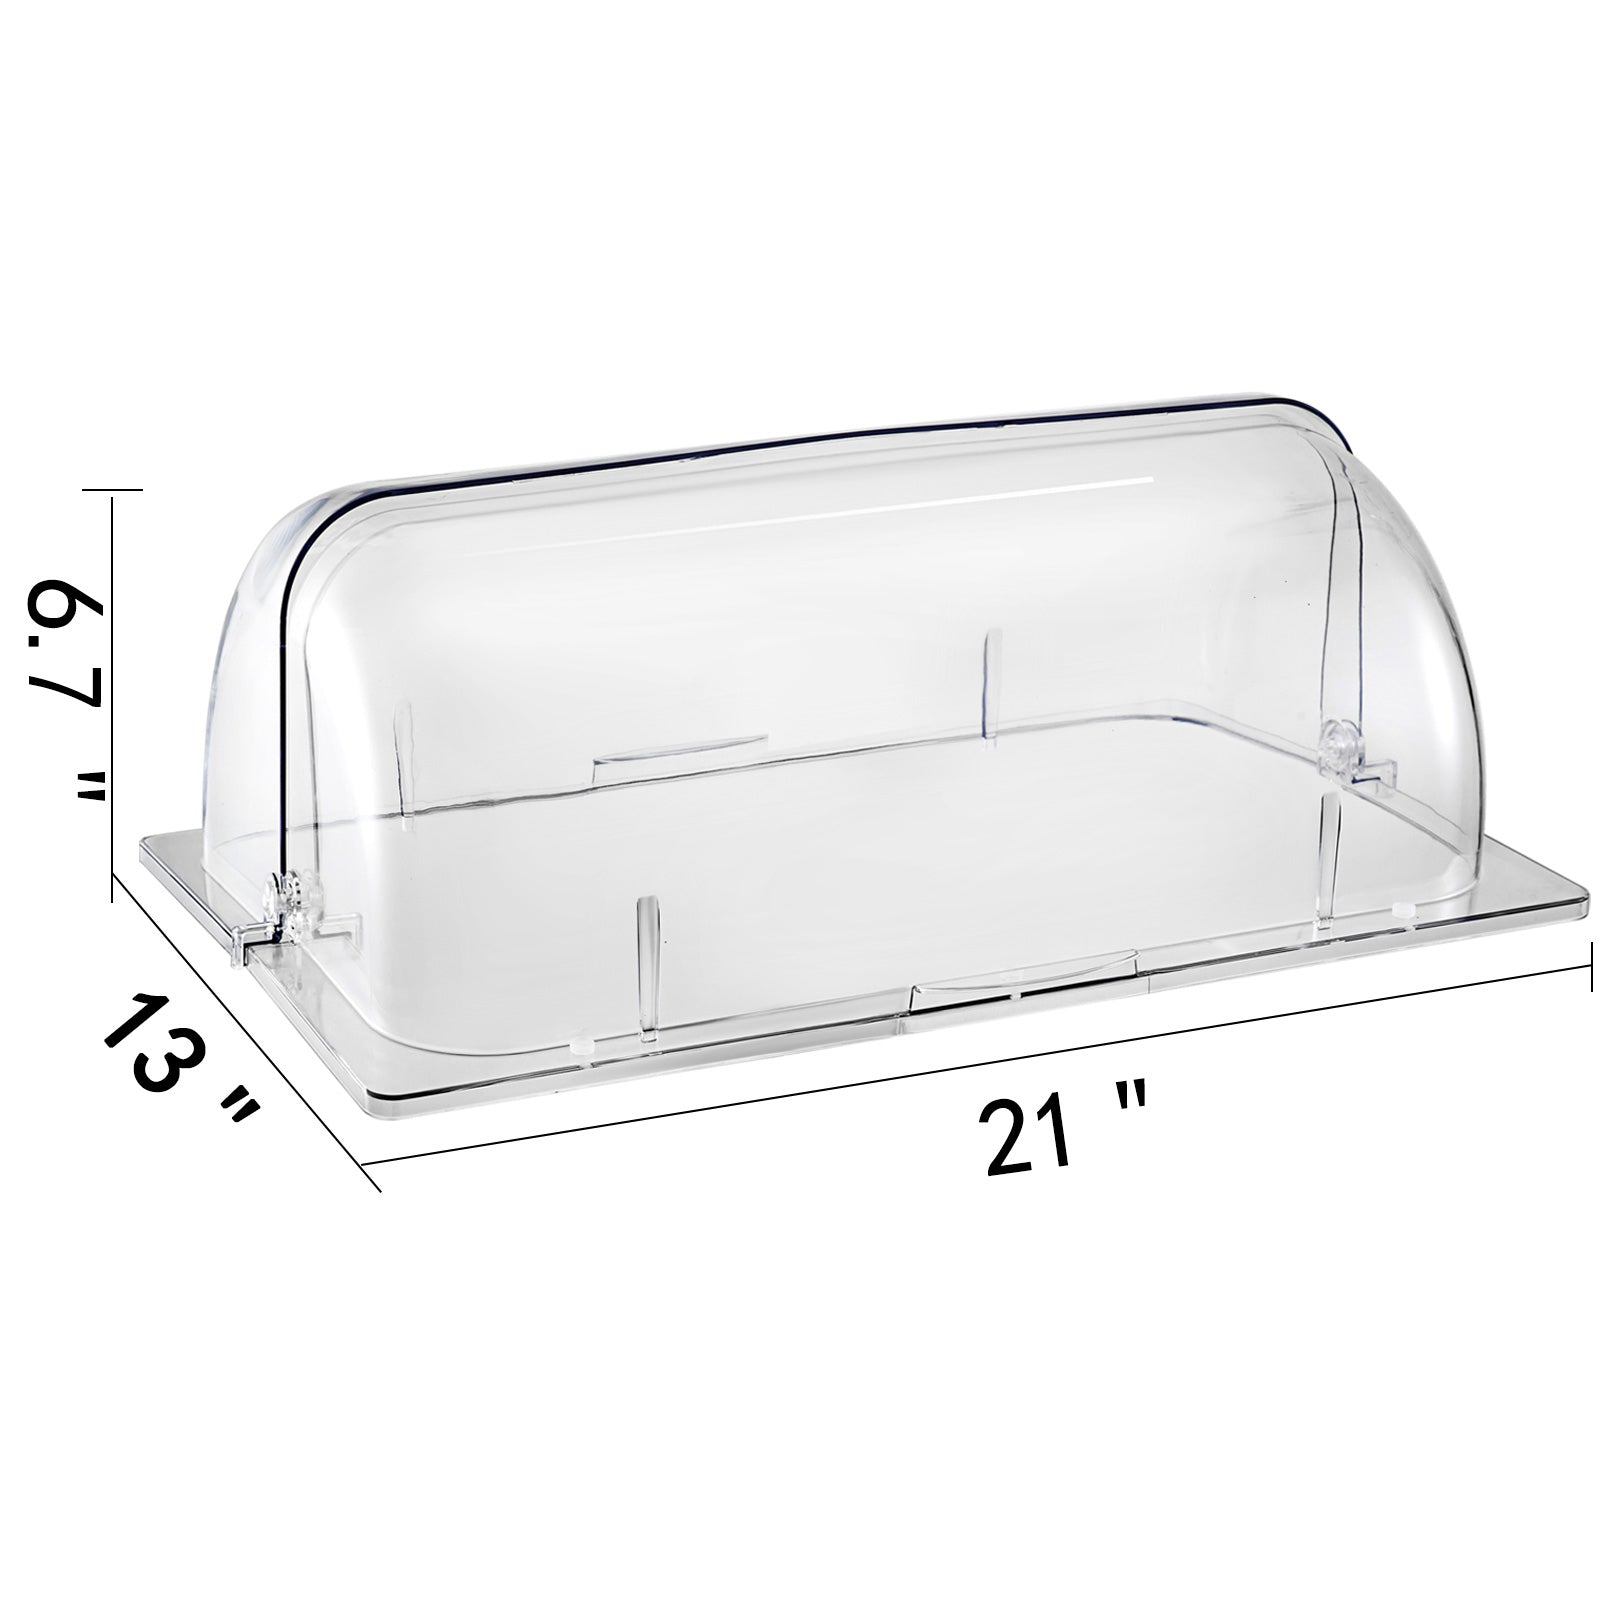 Vevor 6 Pack Chafing Dish Cover Clear Full Size Roll Top Bakery Pan Display Case